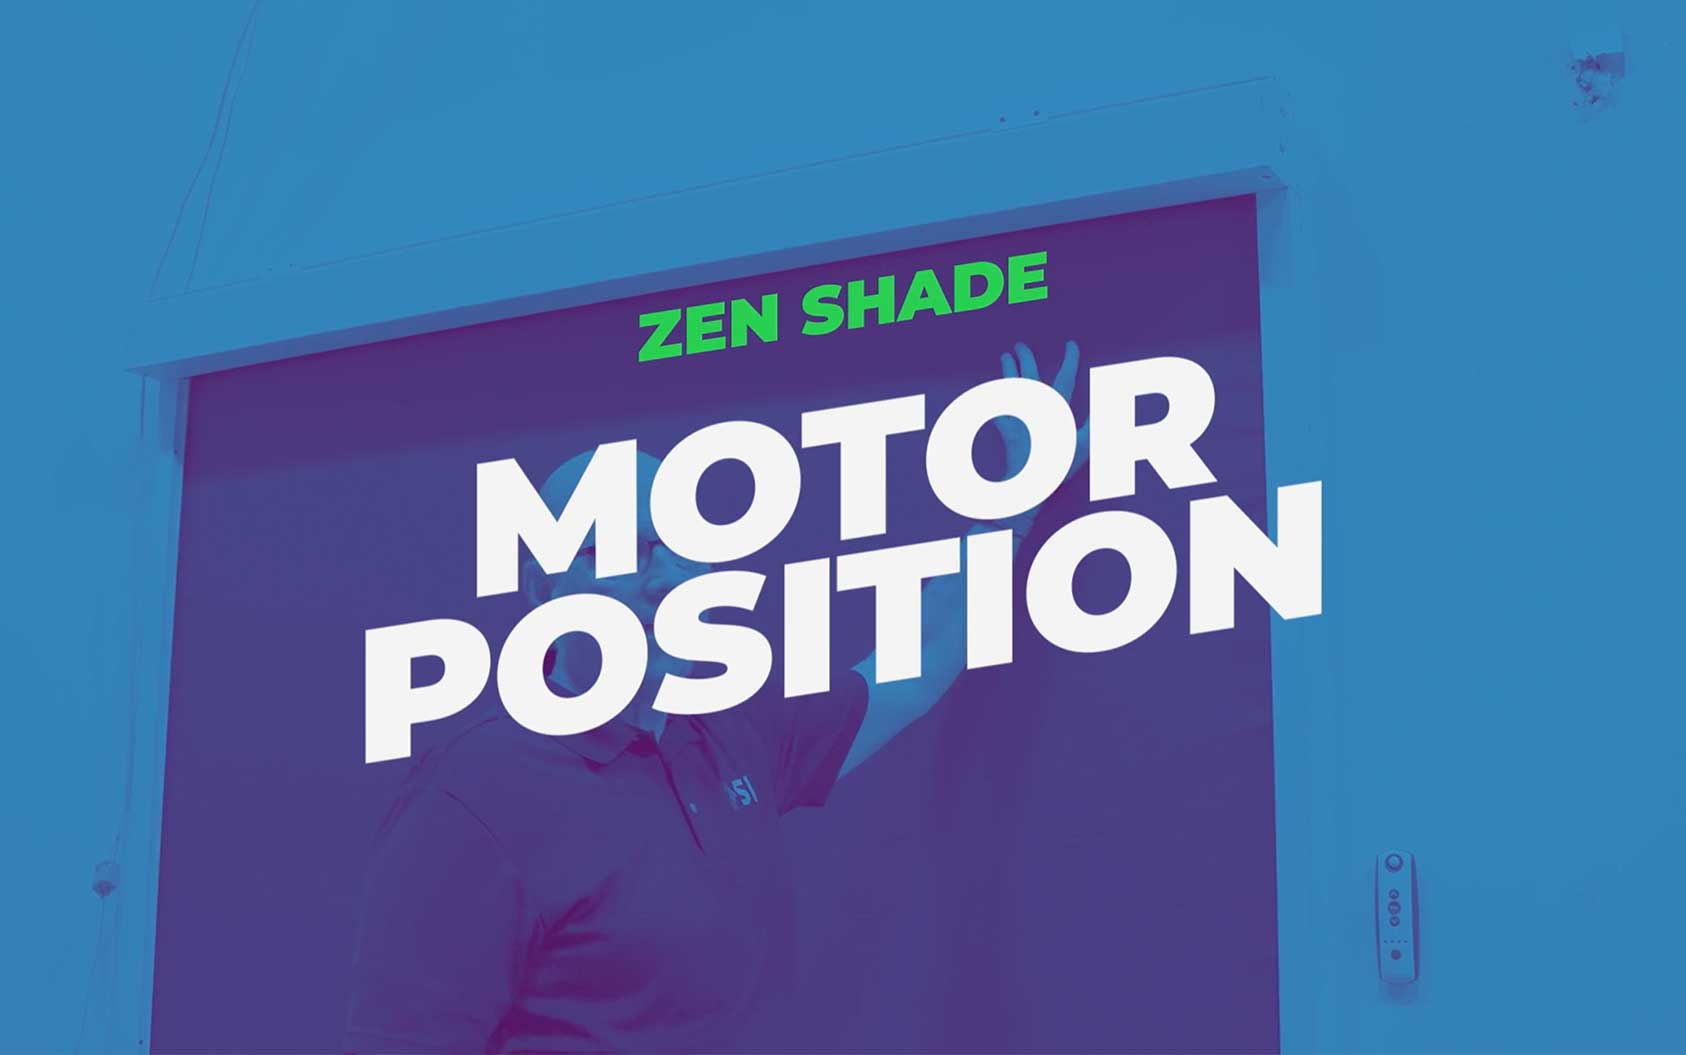 How to Determine Motor Position on Zen